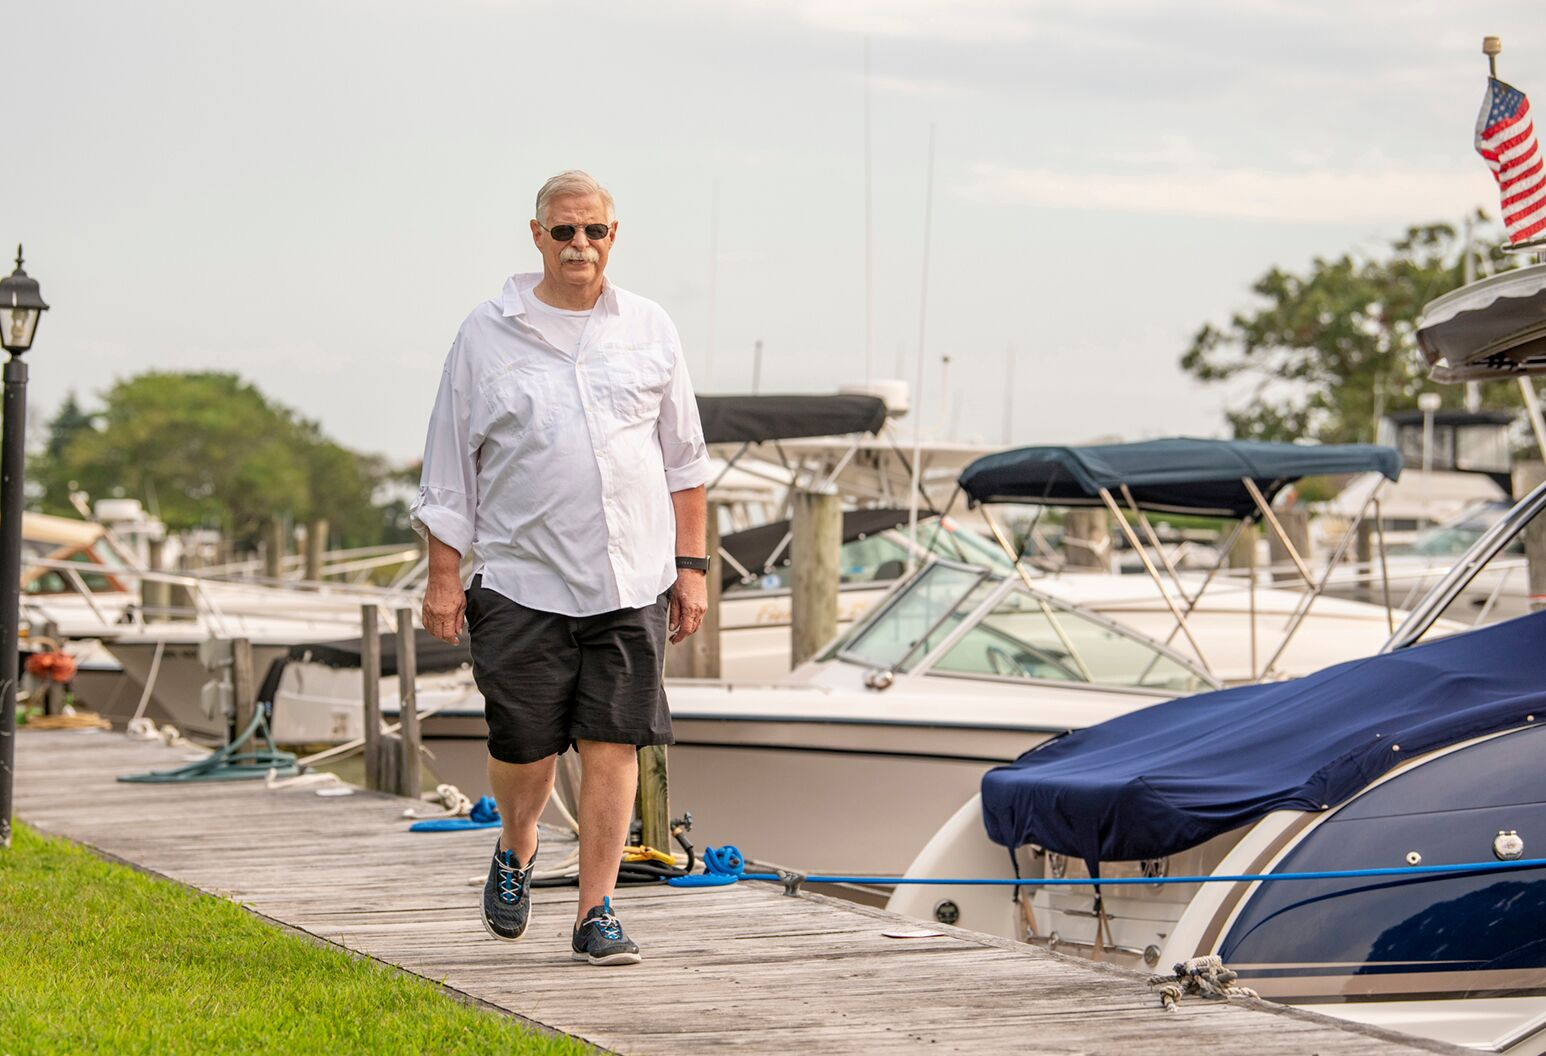 Man in his 60s walks on a dock next to tied-up boats.